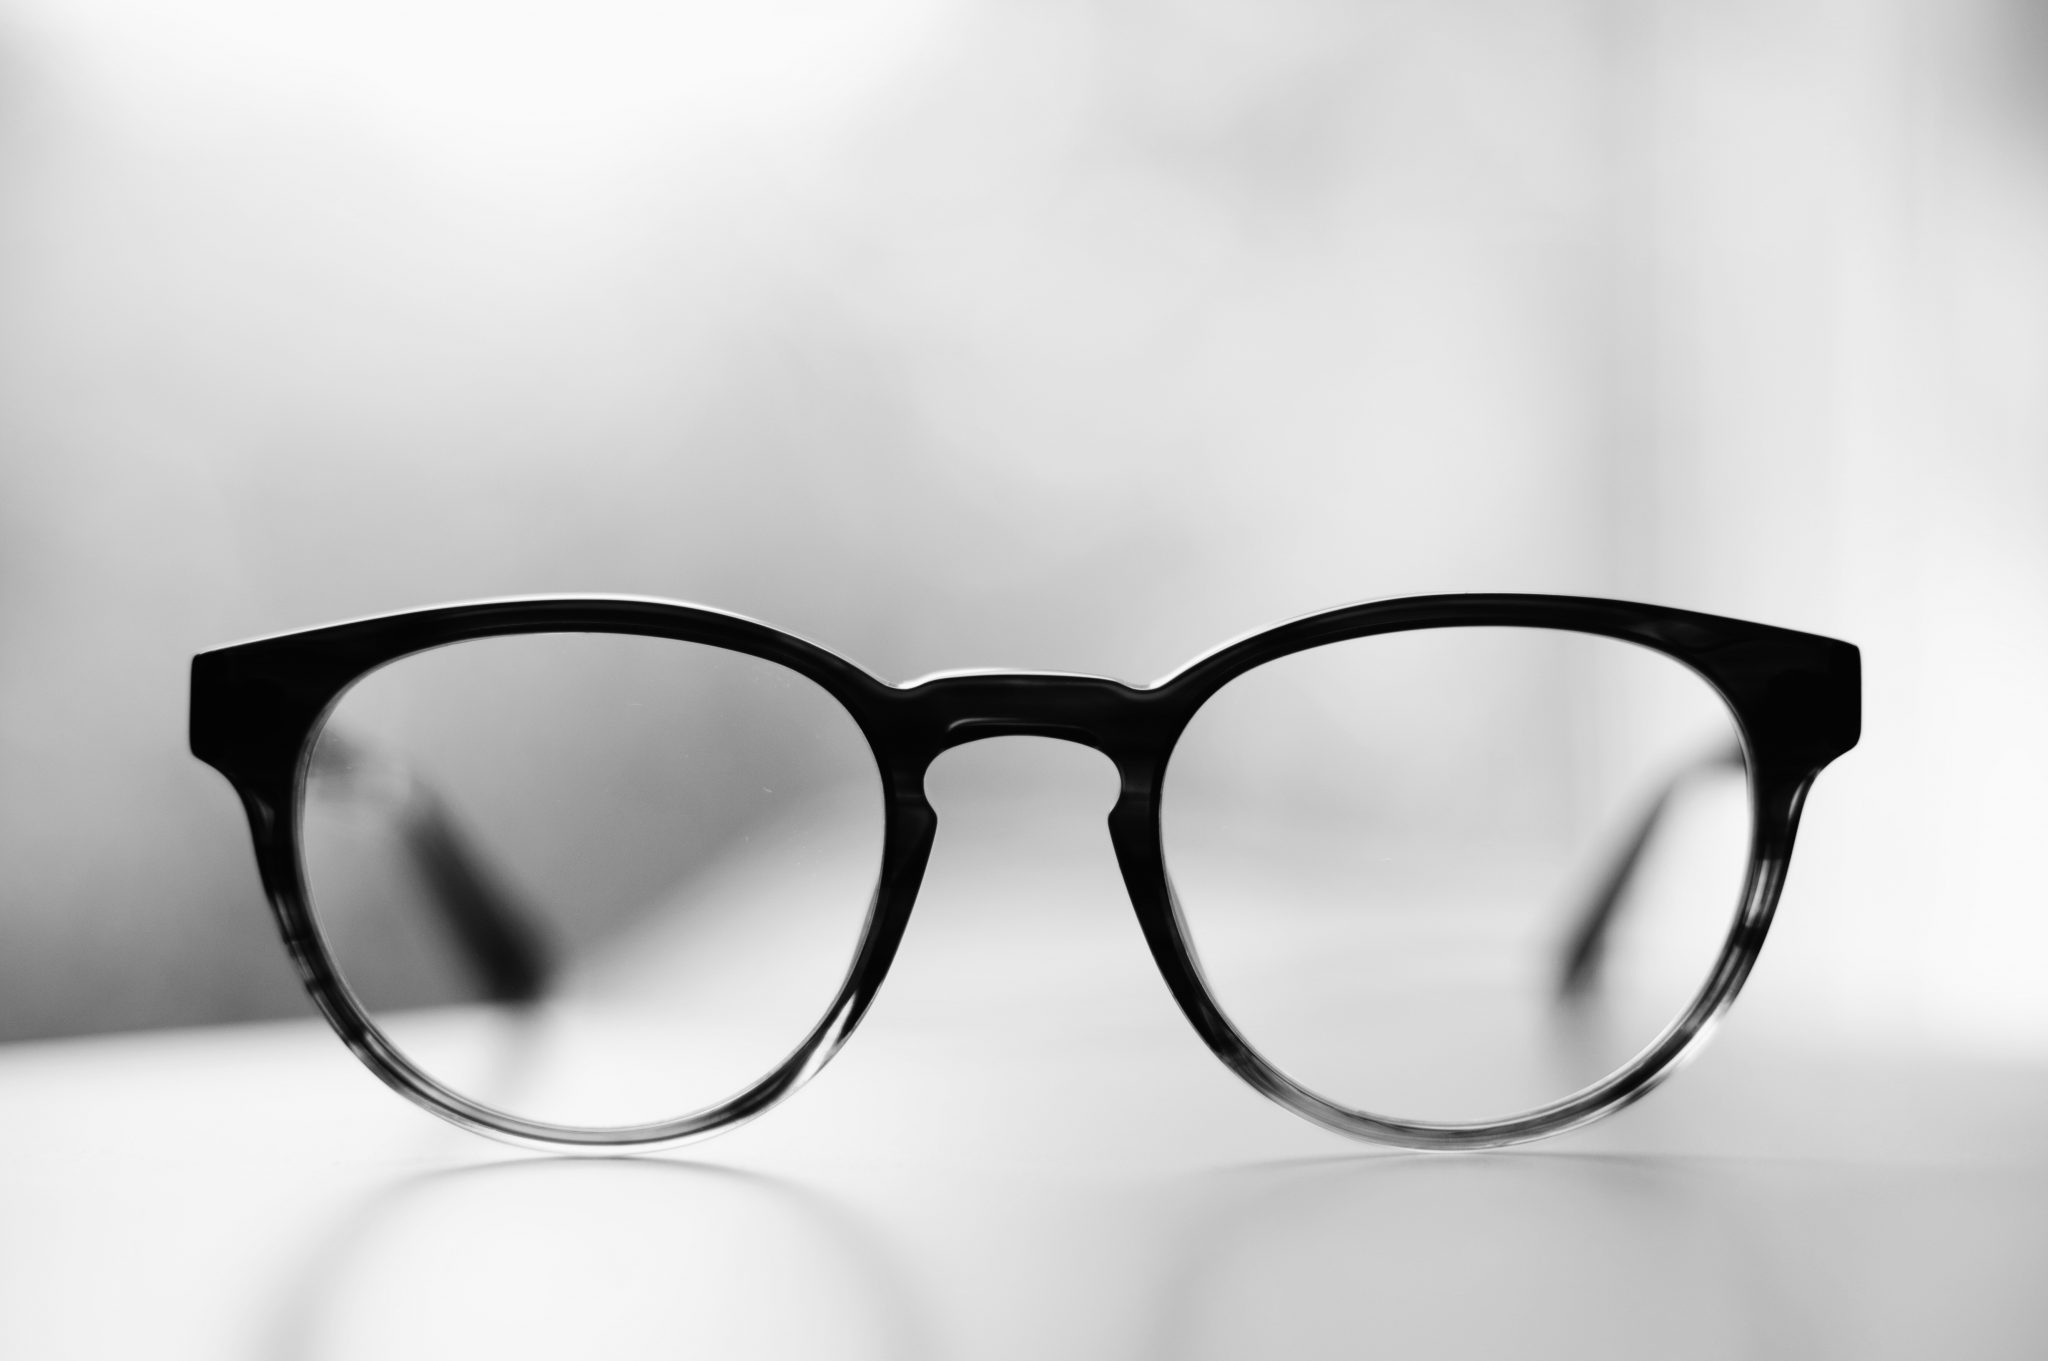 improve candidate's experience with visibility